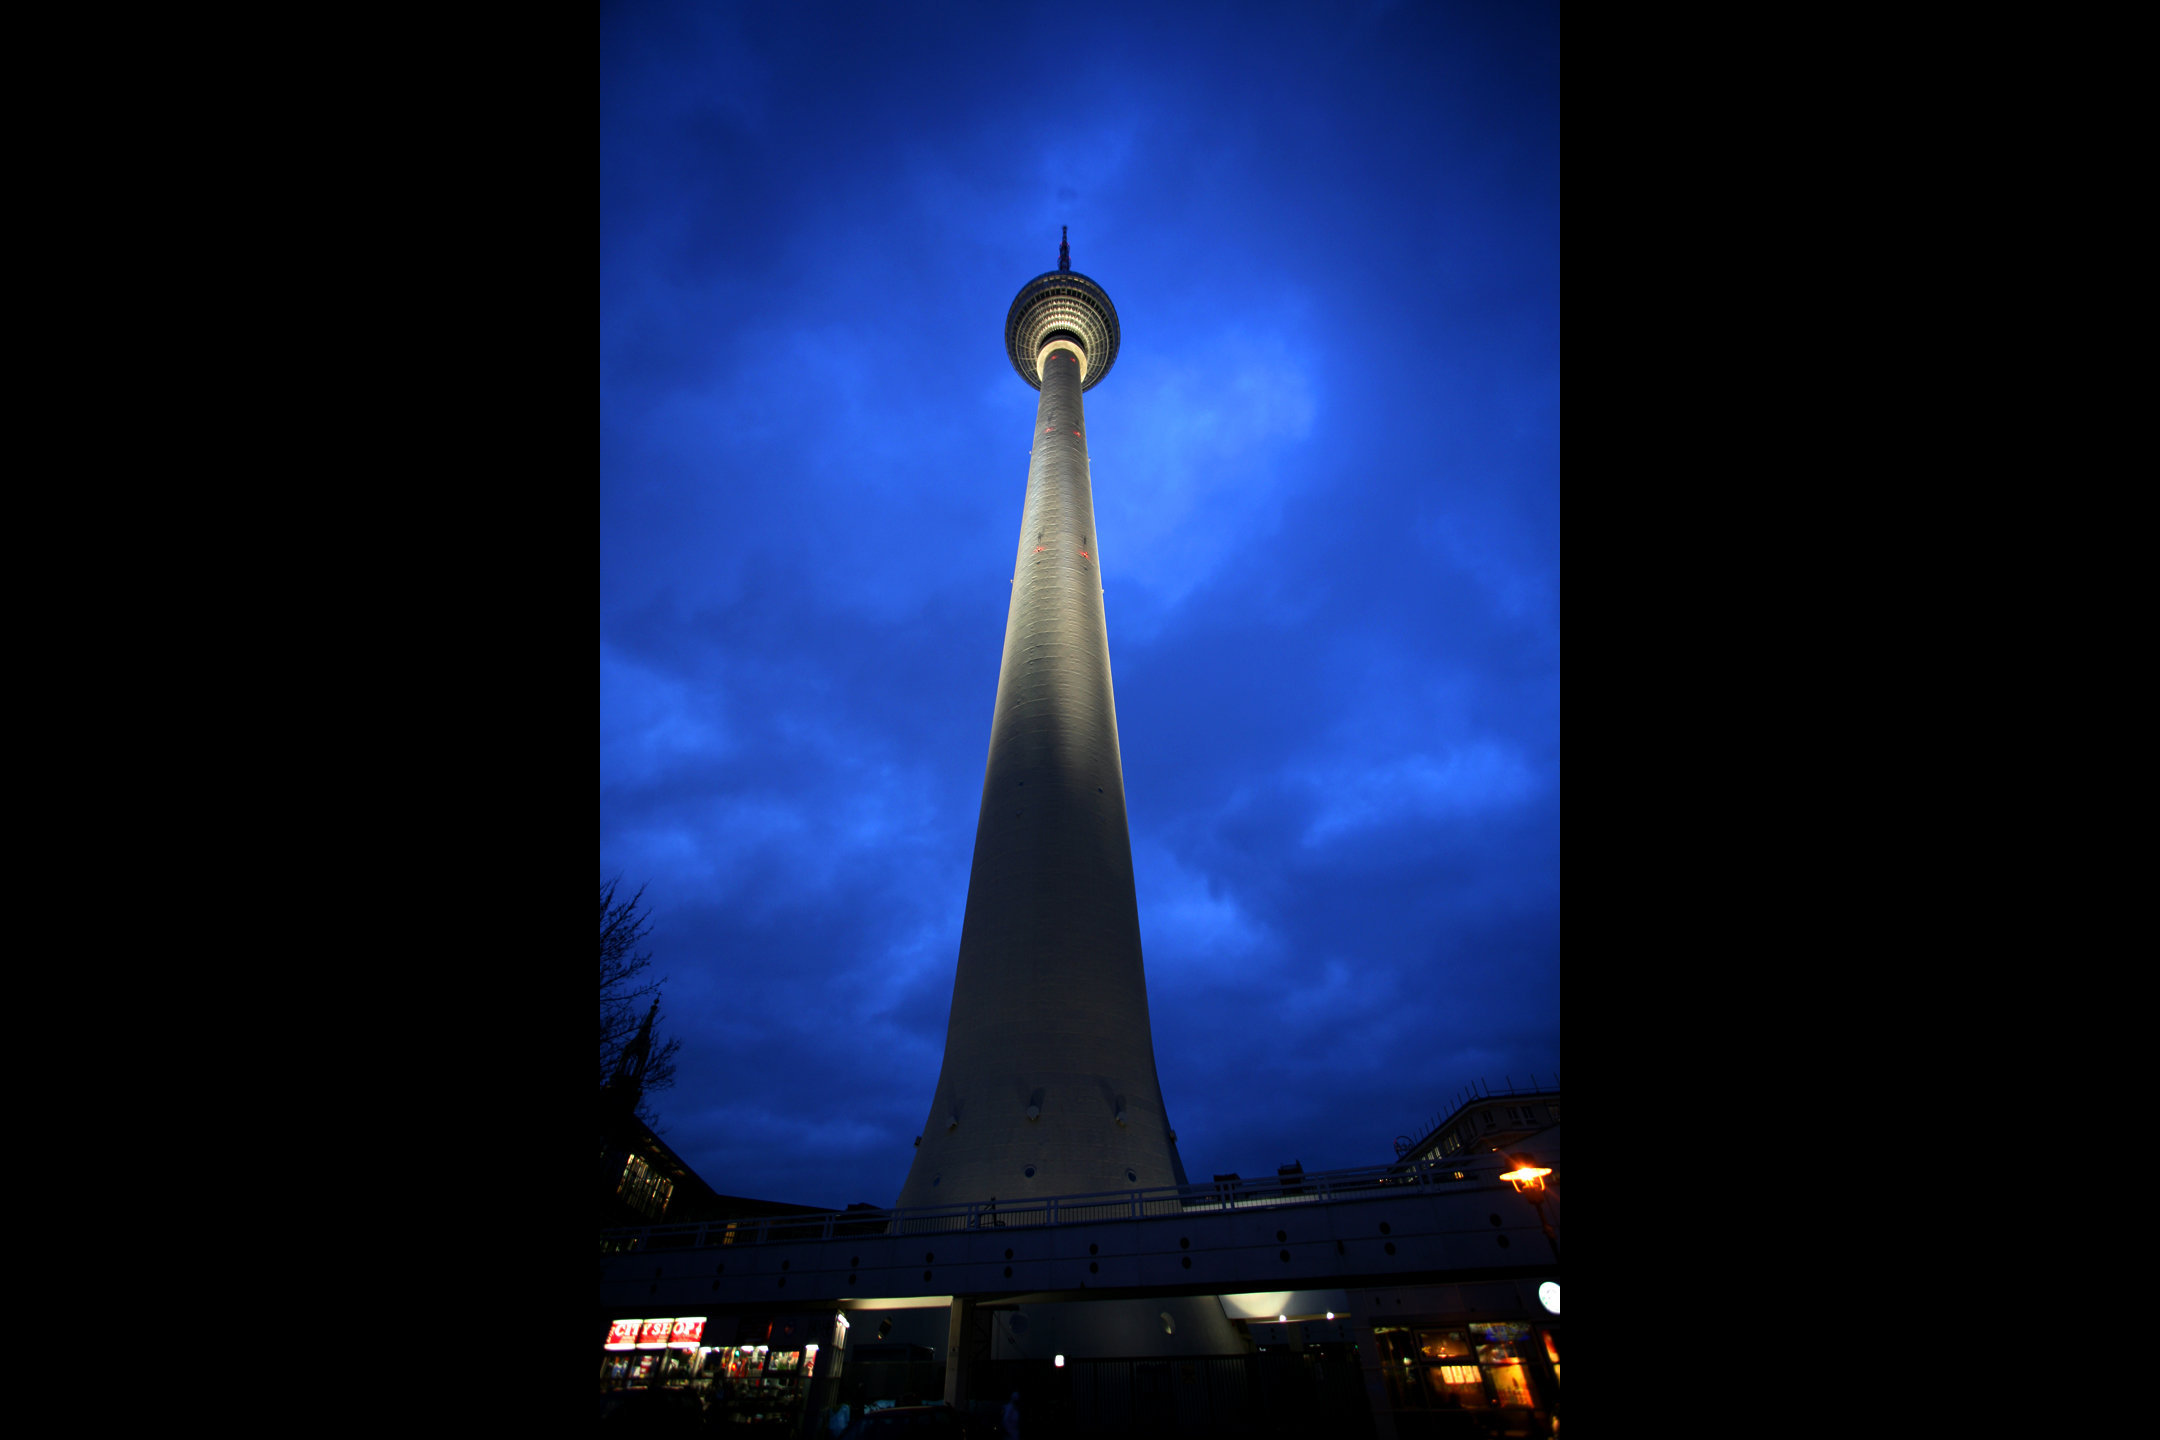 TV tower1.jpg